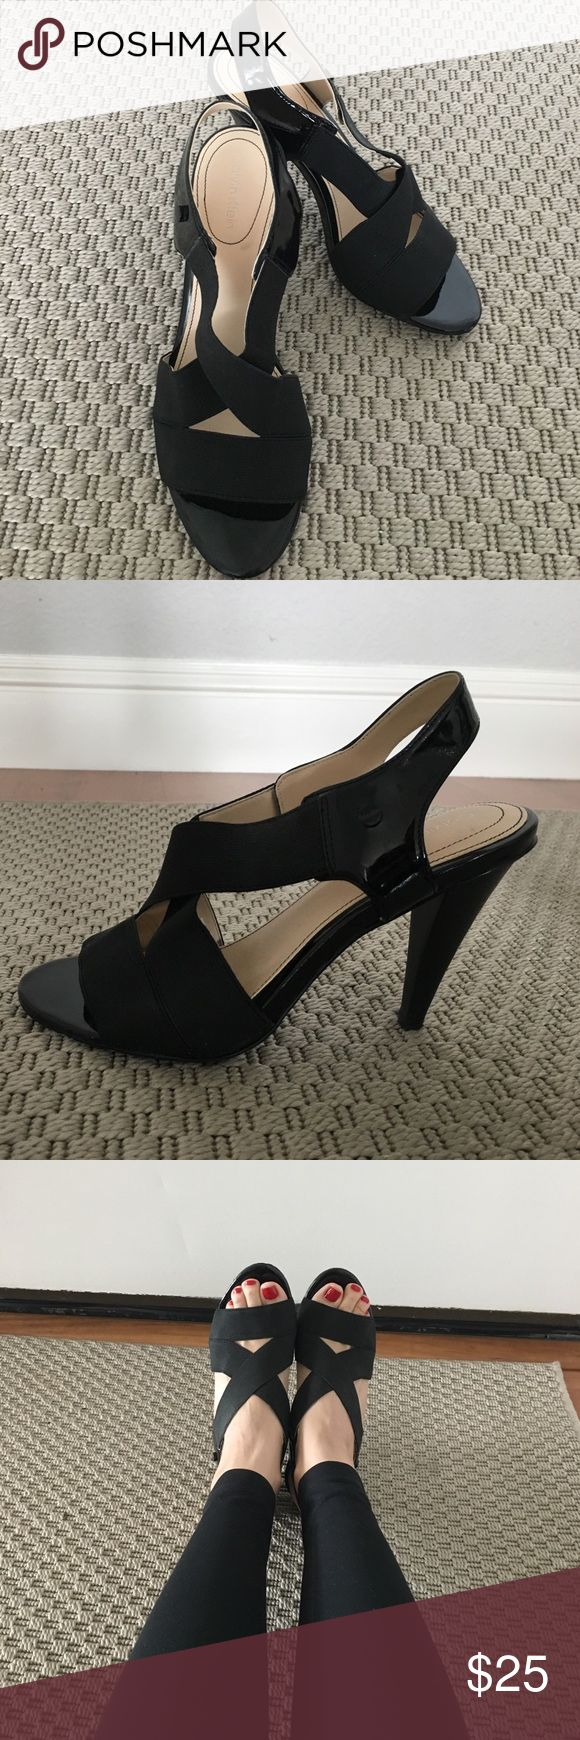 Calvin Klein April Elastic Strap Patent Heels 3.5 inches high, lightly worn (maybe 1-2x). Great for dresses, skirts, or leggings/skinnies. Very comfy, as the heel has a bit of cushion support. A great closet staple as they go with so many things. Also easy and light enough to pack for travel. Calvin Klein Shoes Heels